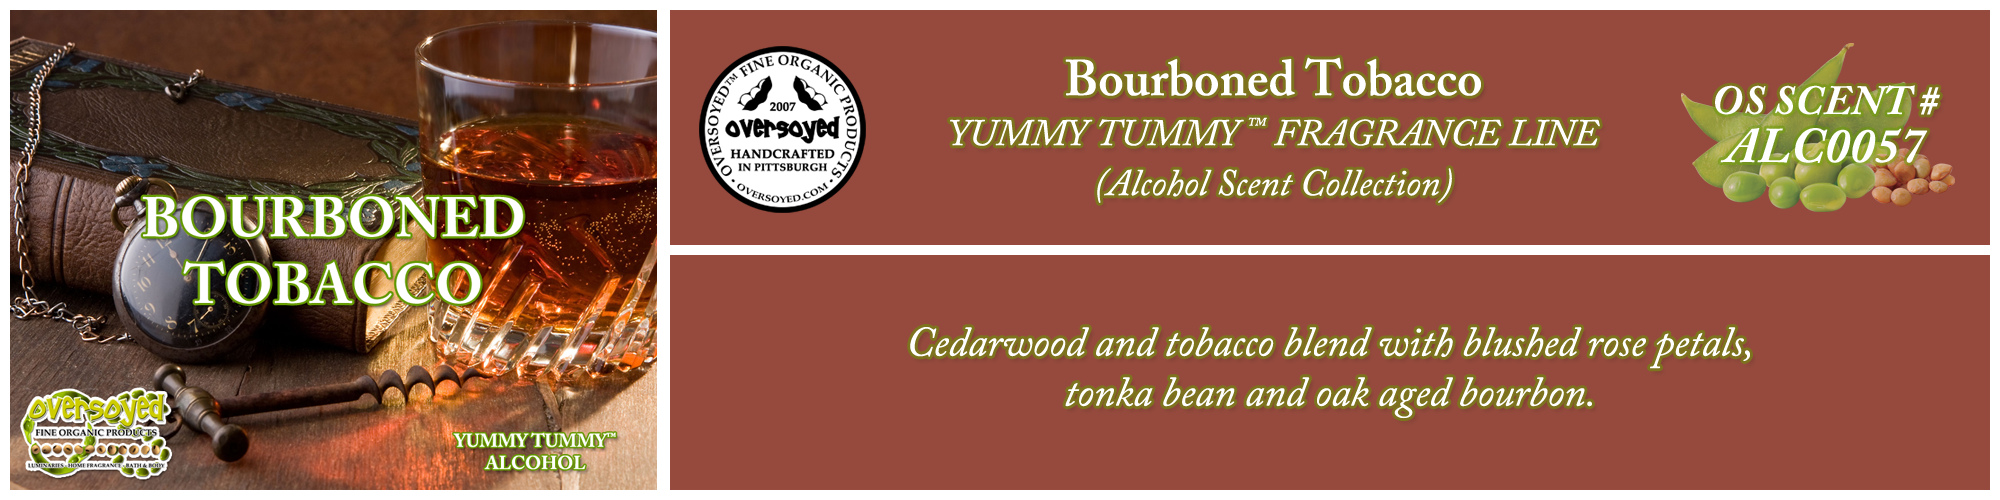 Bourboned Tobacco Handcrafted Products Collection